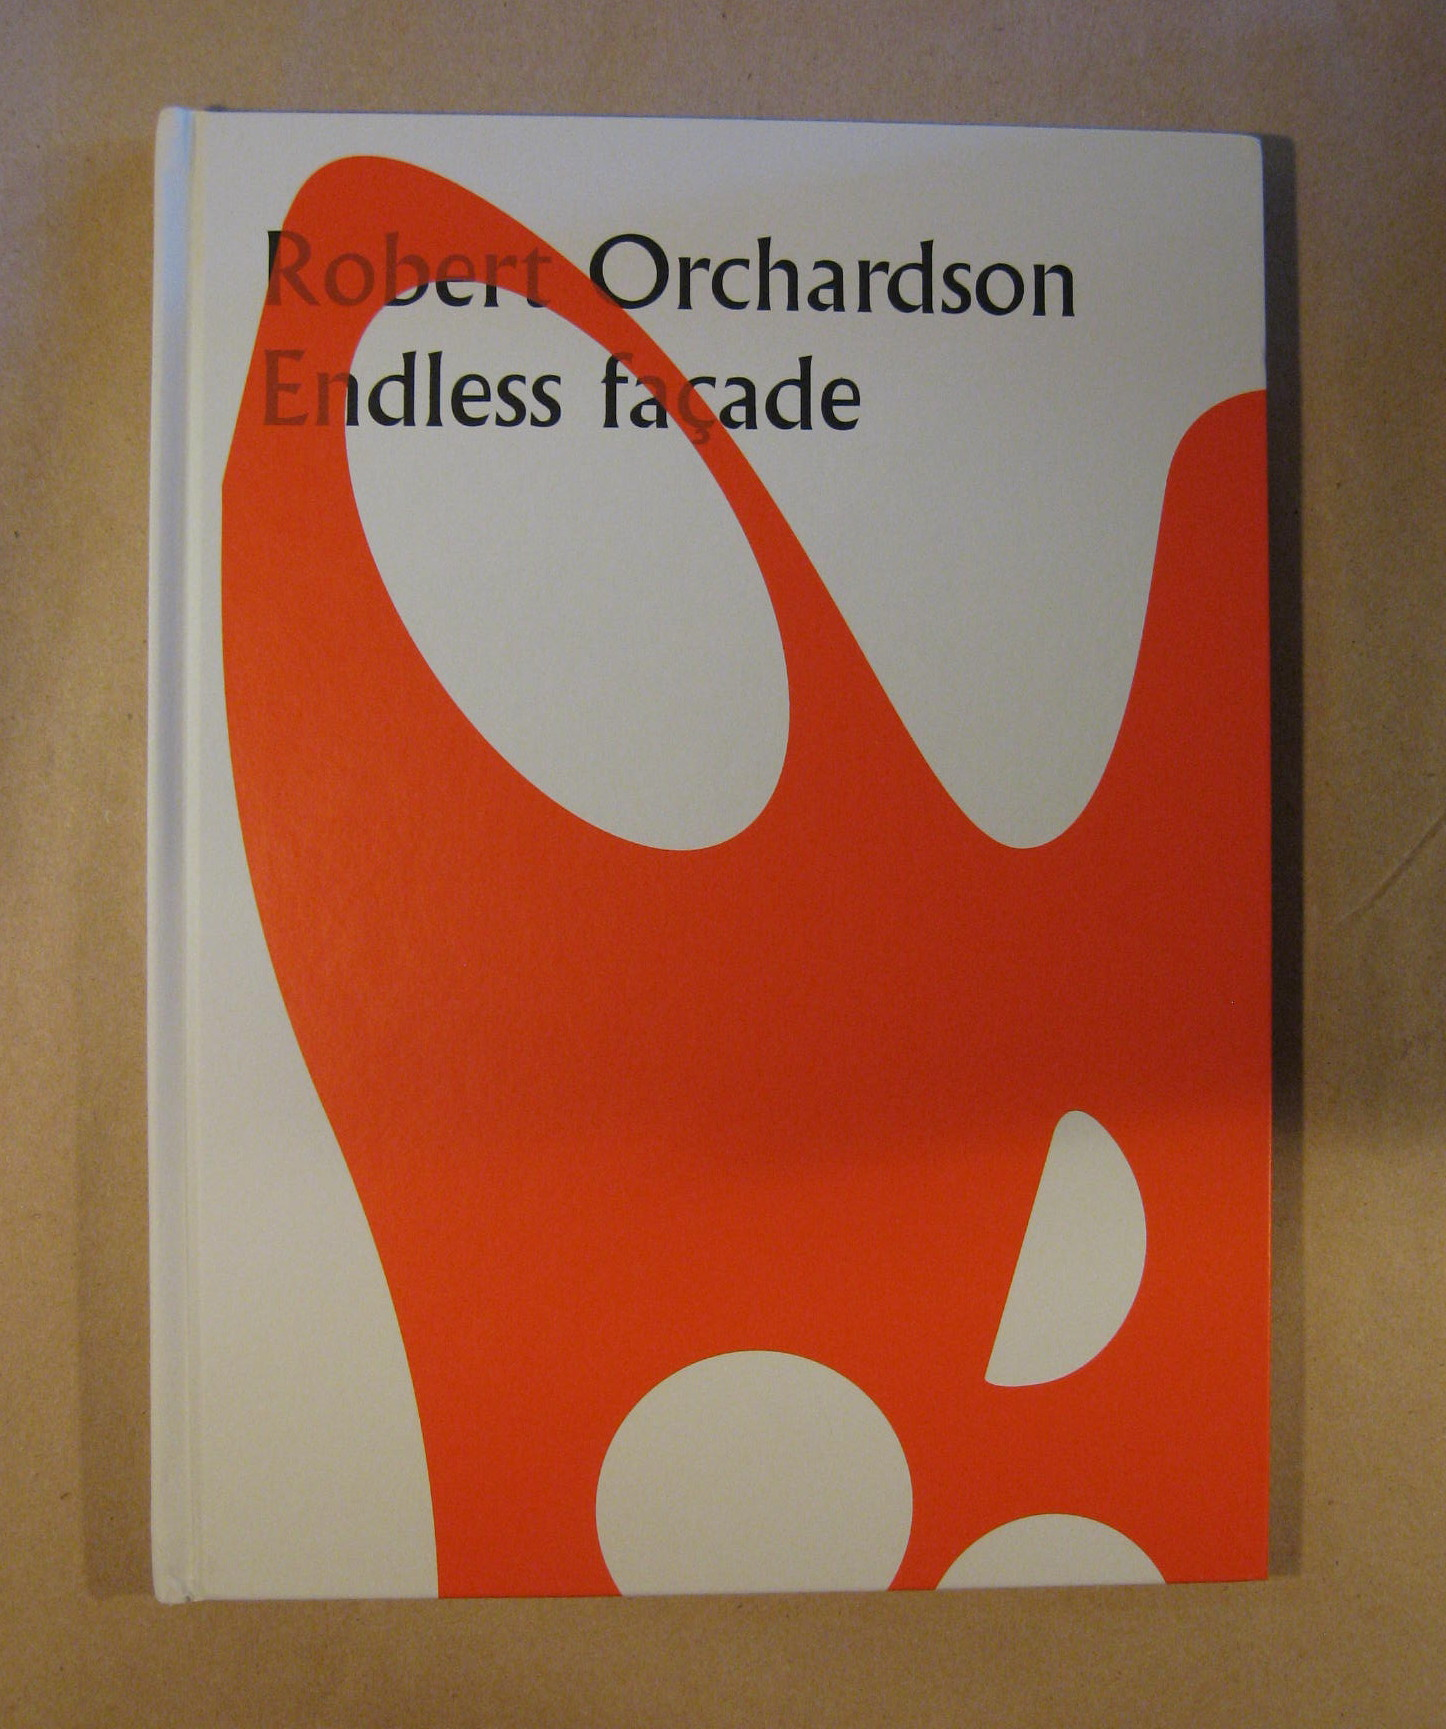 Image for Robert Orchardson : Endless Façade